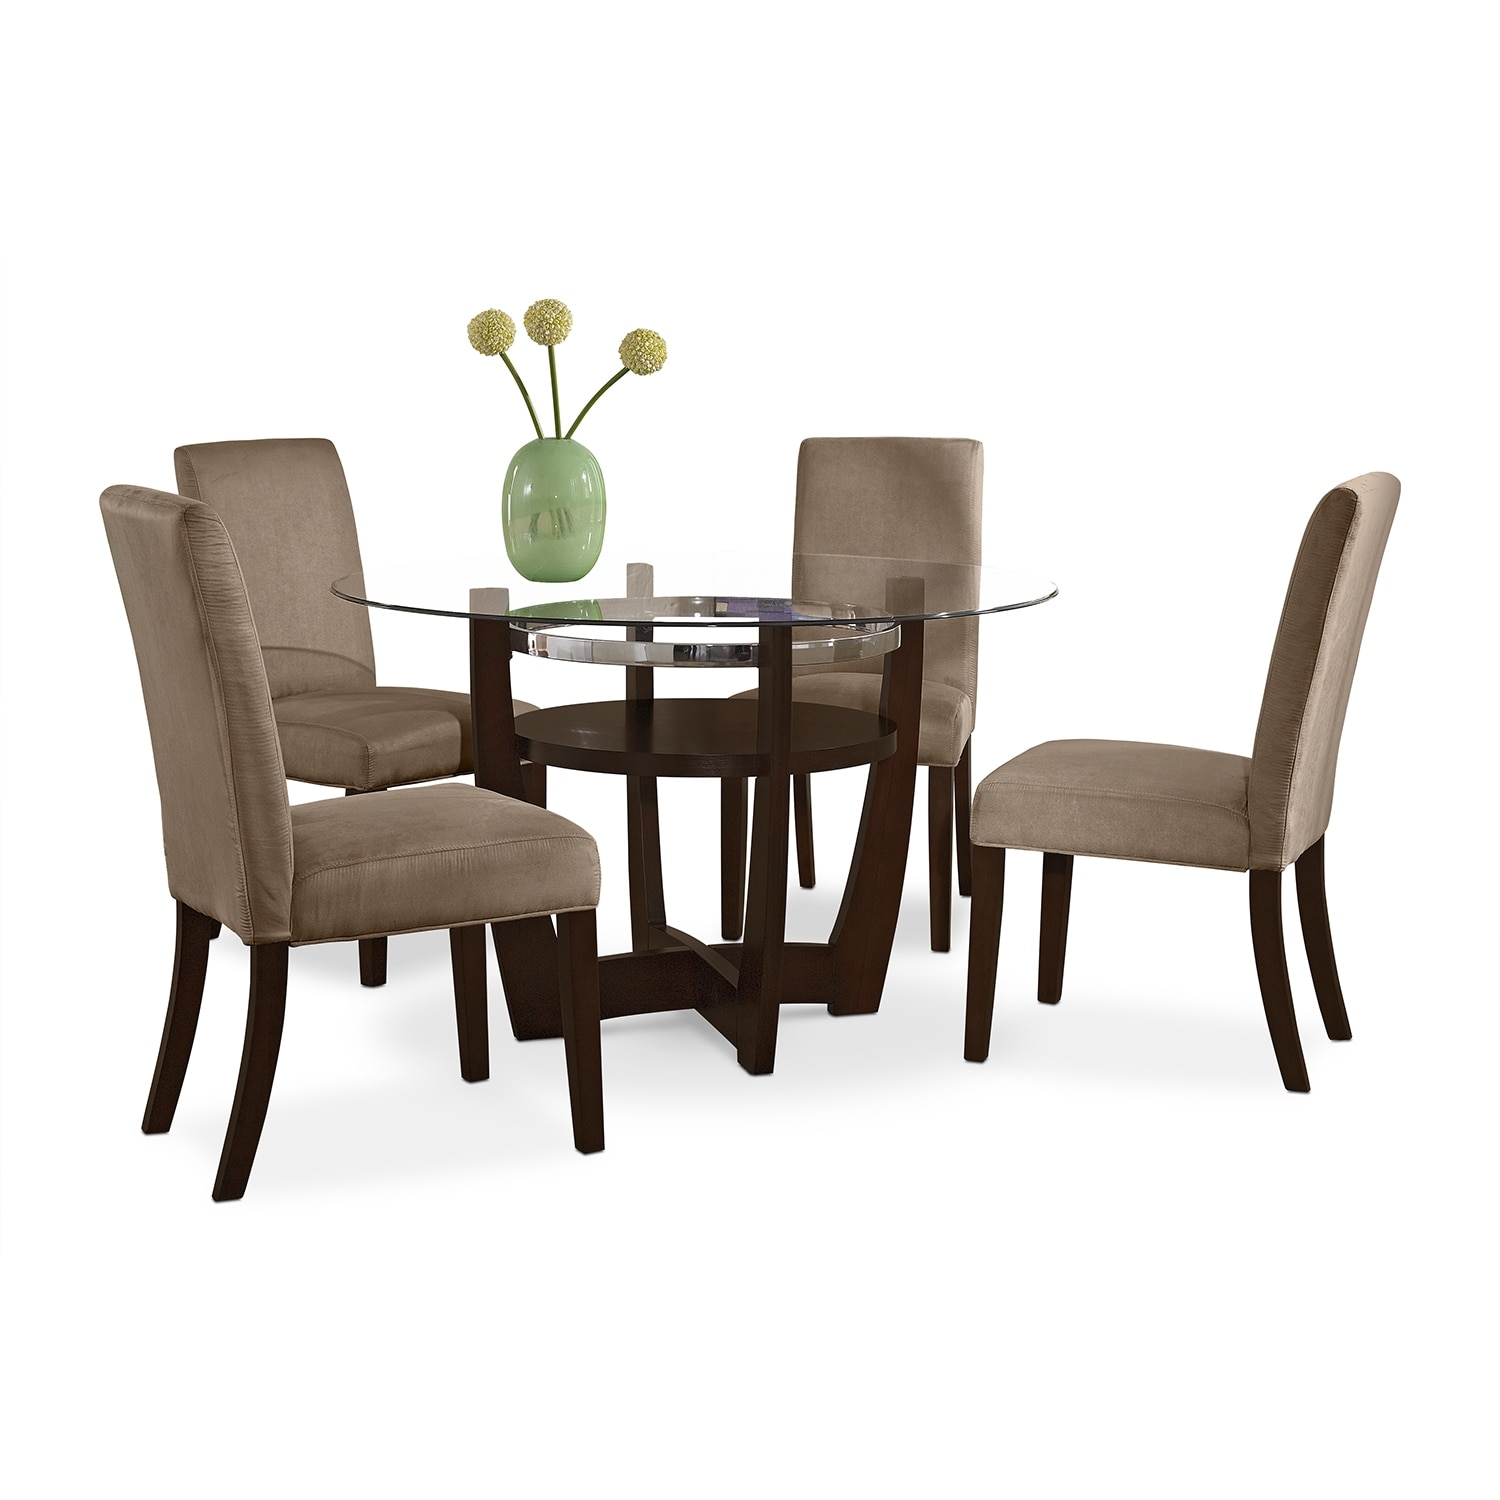 Dining Room Furniture - Alcove Dinette with 4 Side Chairs - Beige